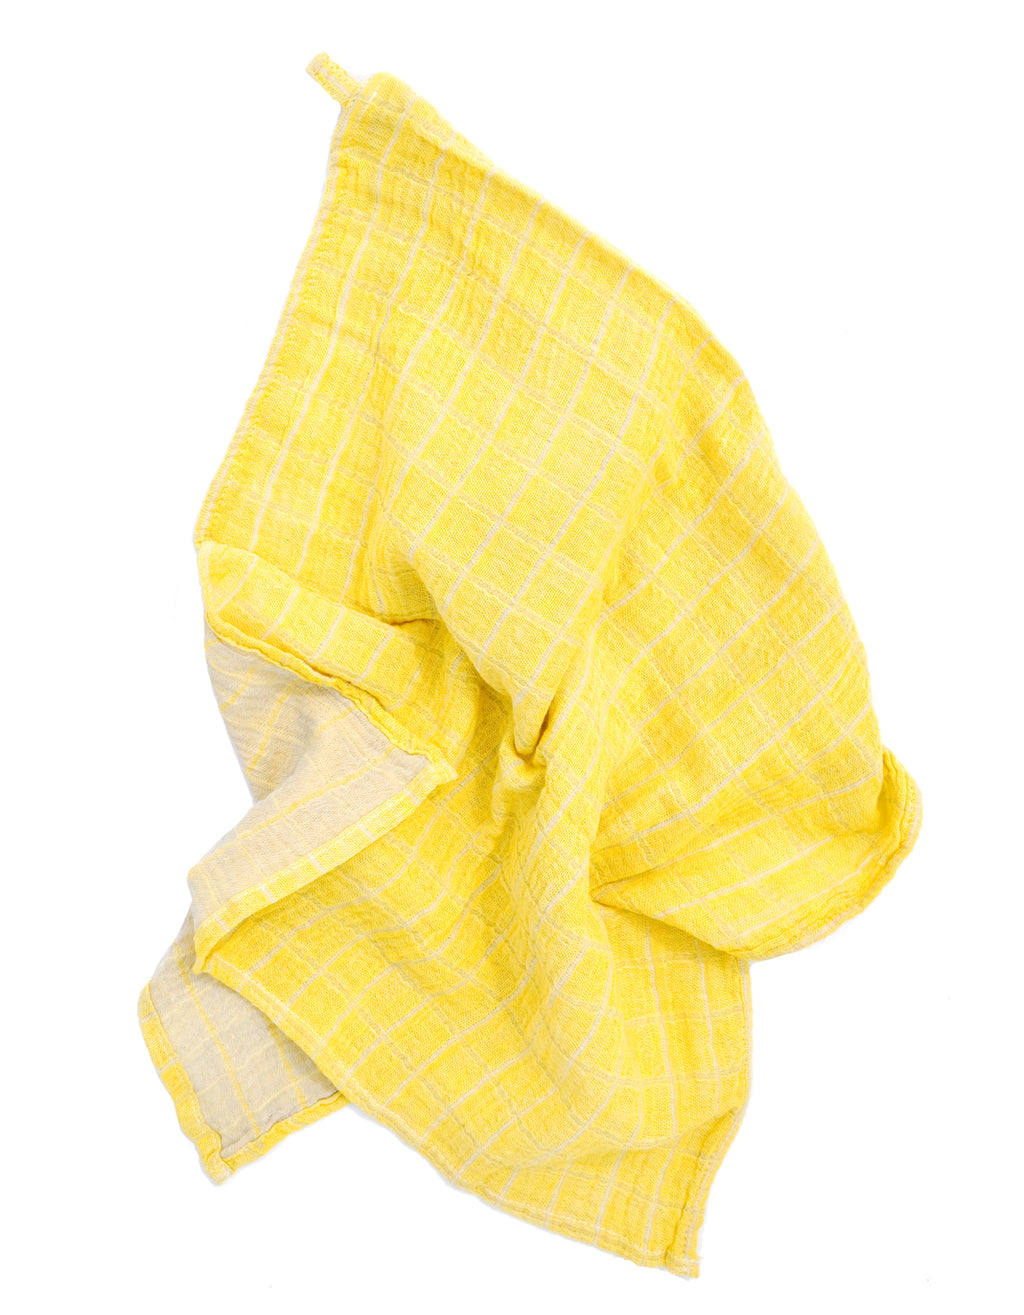 Yolk: Color Duo Hand Towel in Yolk - LEIF